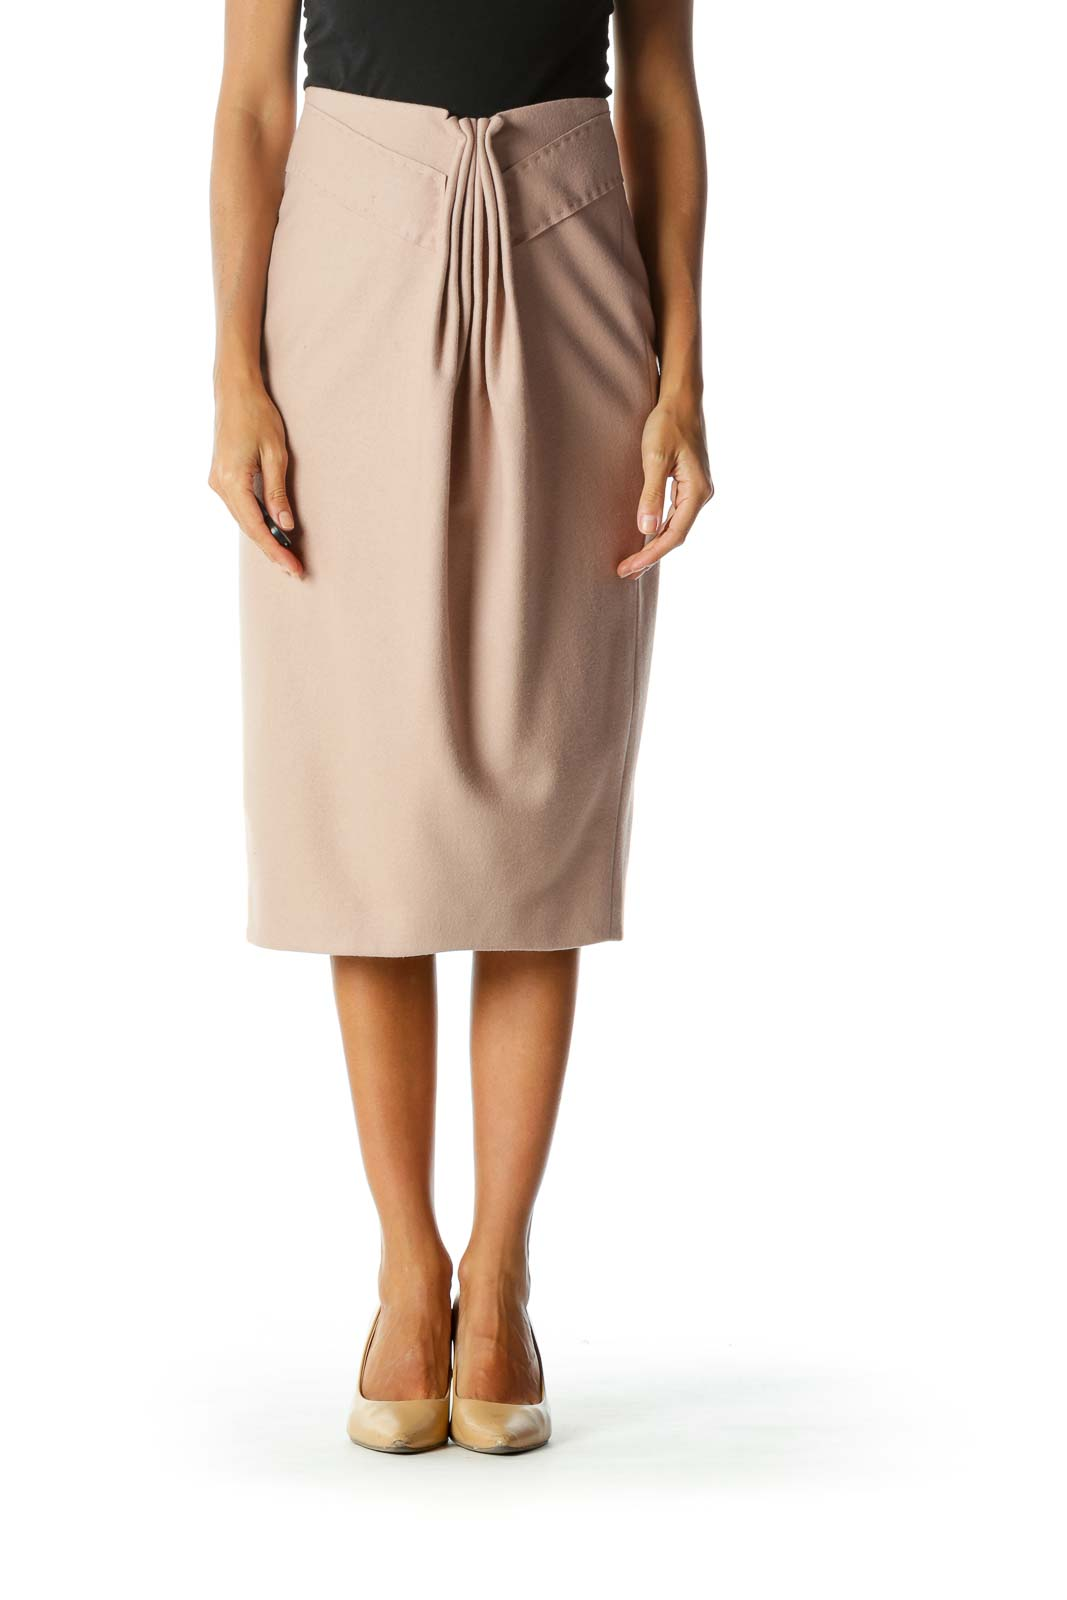 Blush Pink Wool & Cashmere Front-Gathering Midi Pencil Skirt